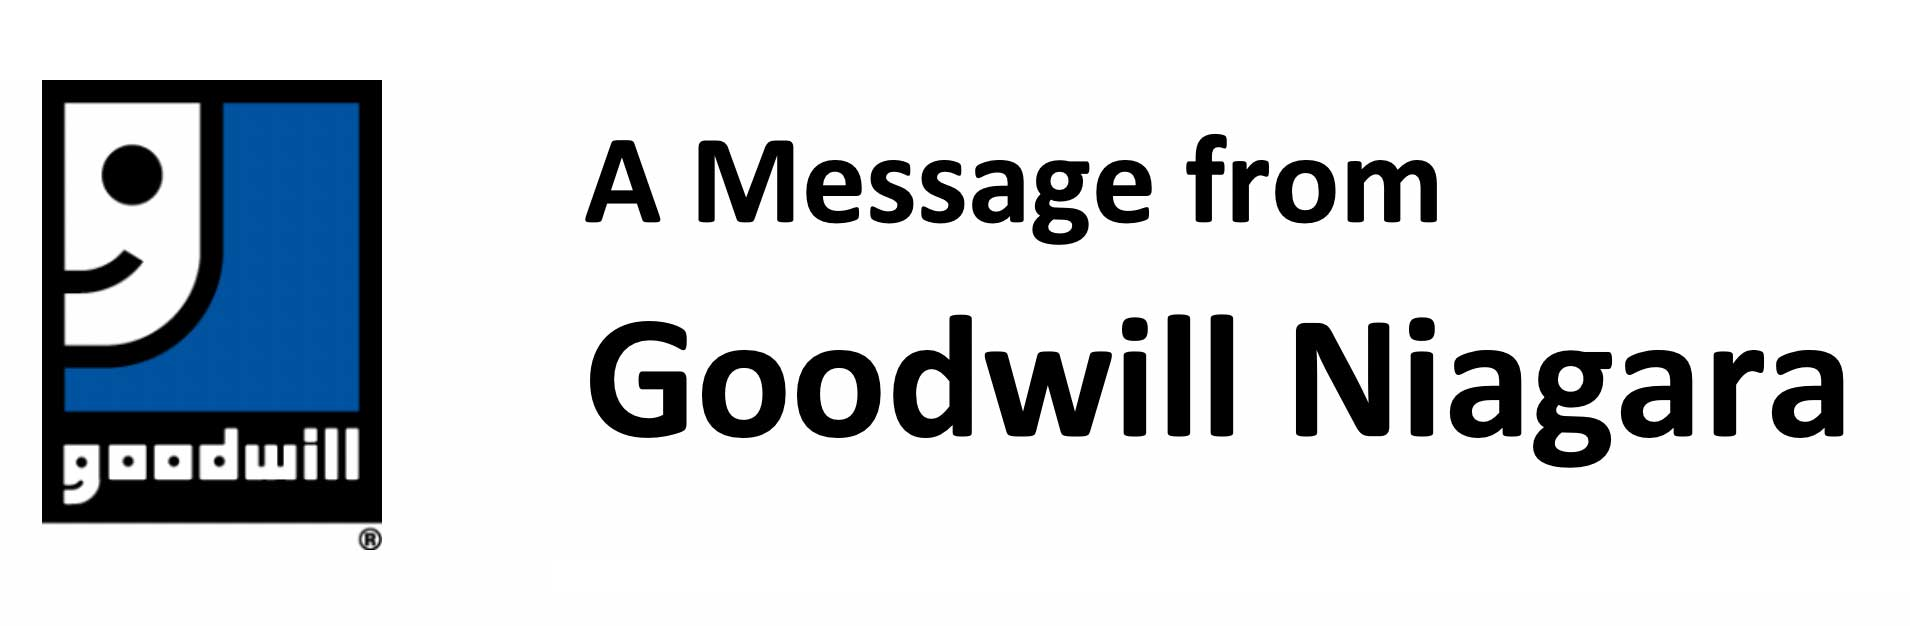 A Message From Goodwill Niagara